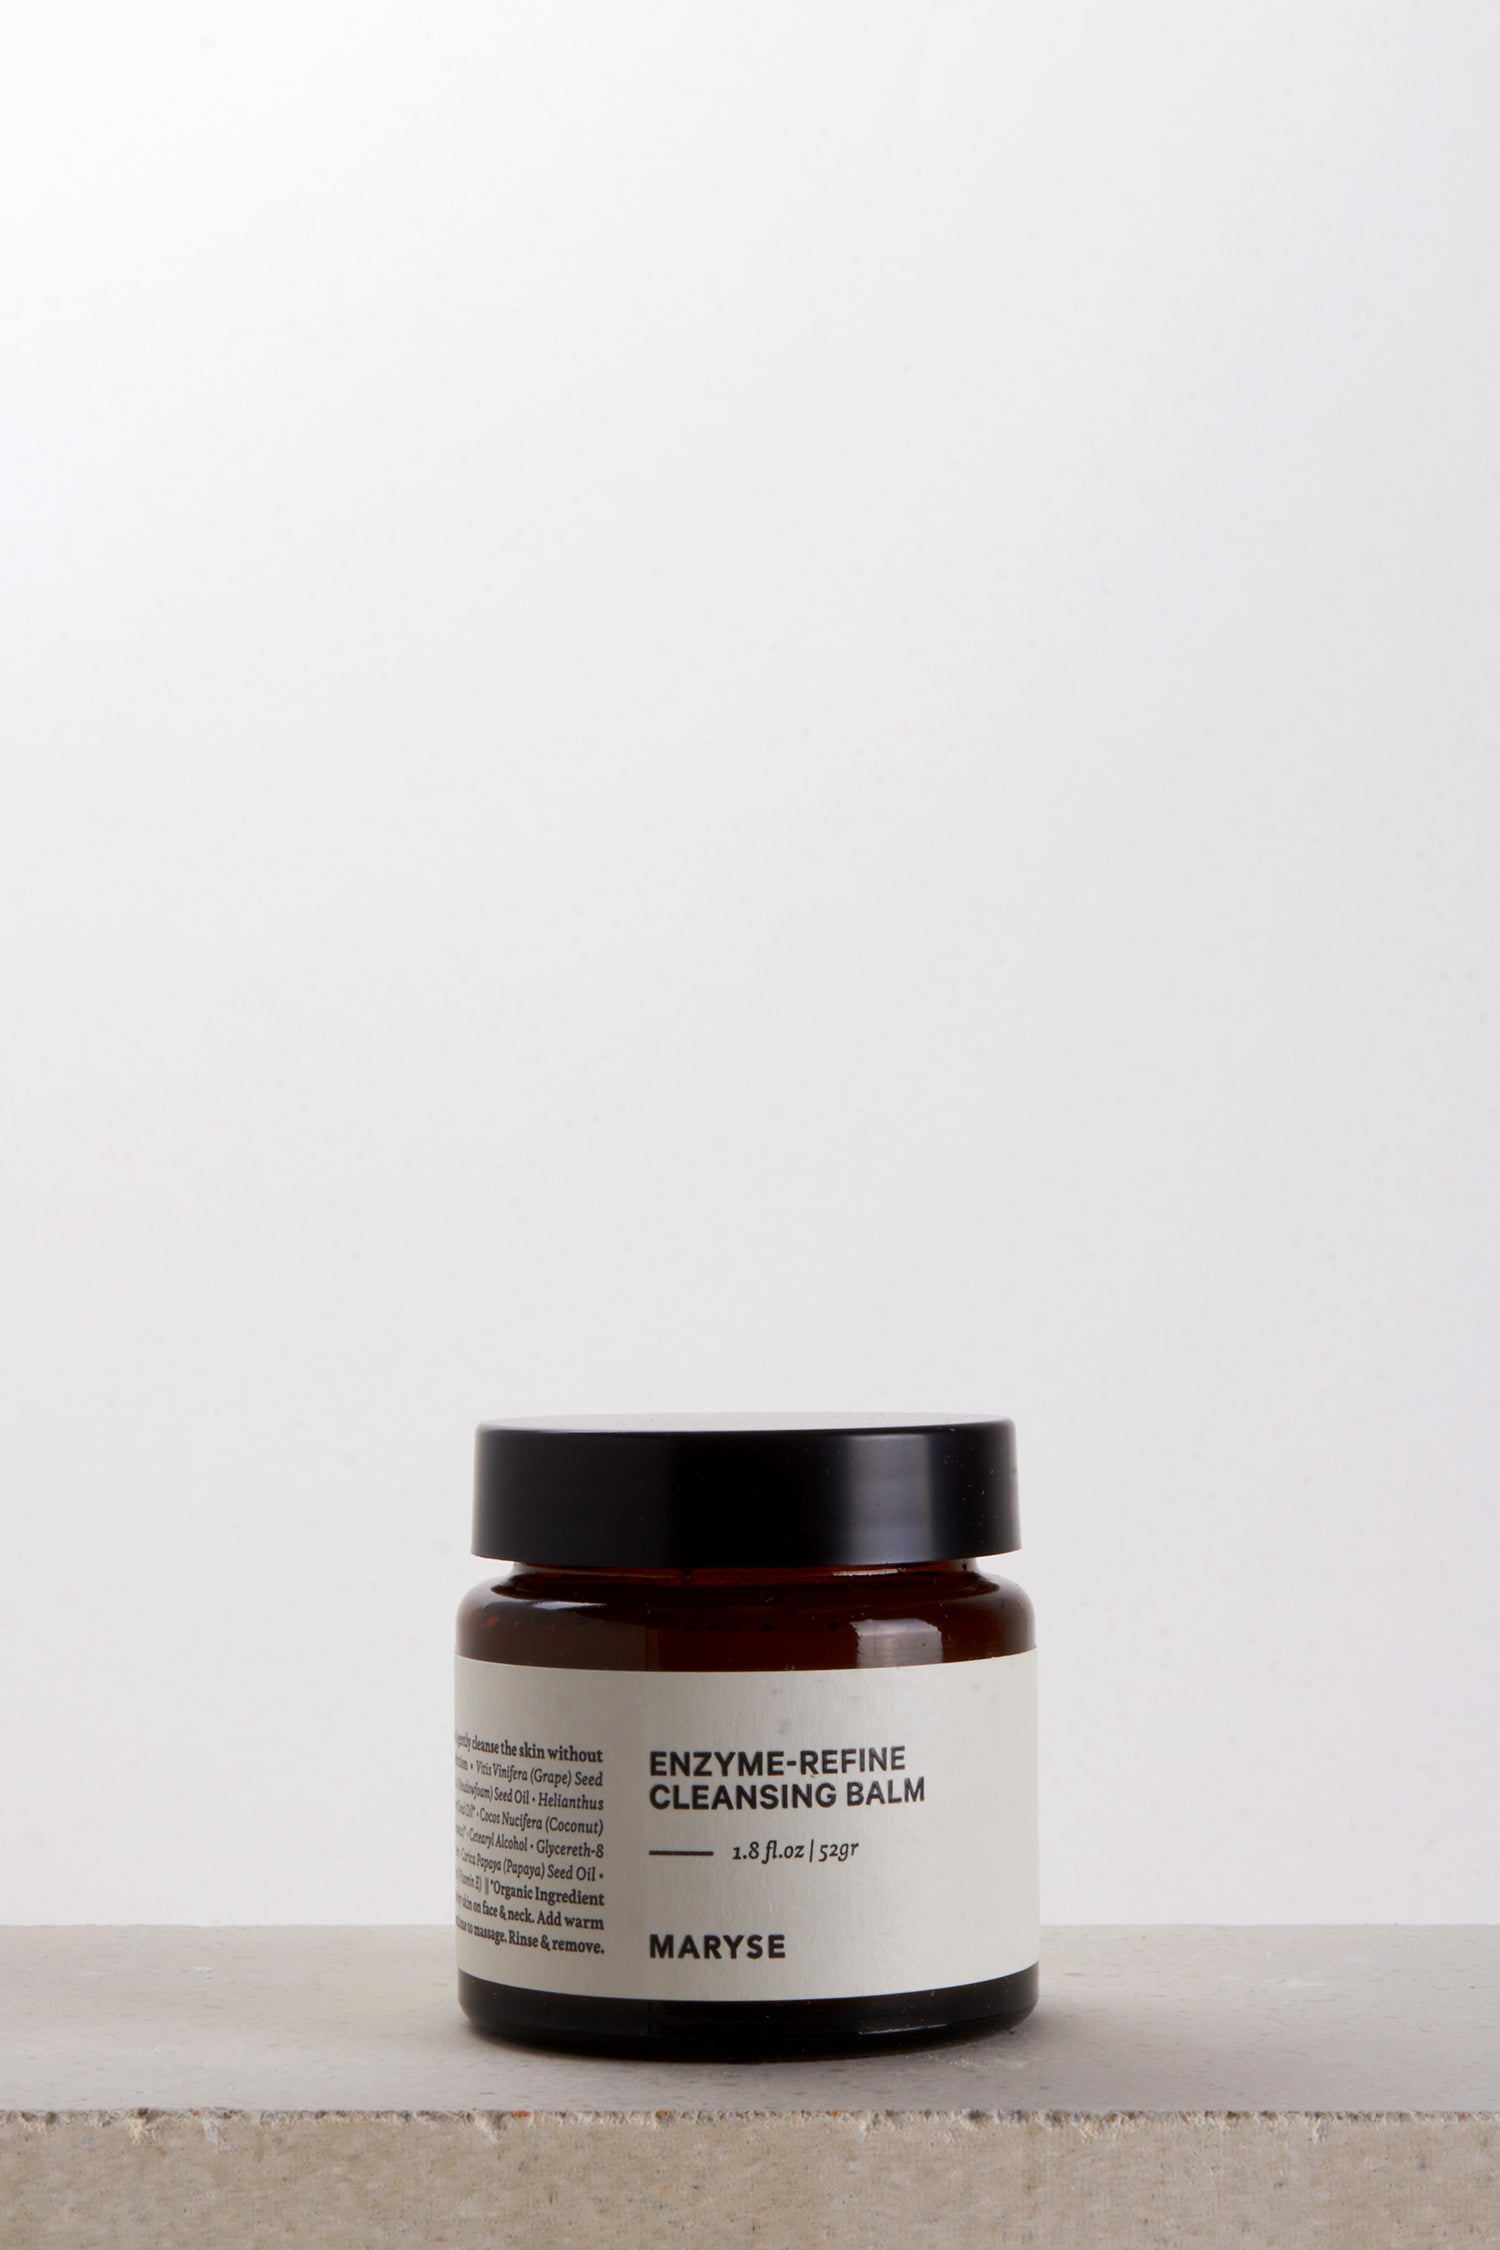 ENZYME-REFINE CLEANSING BALM 52G